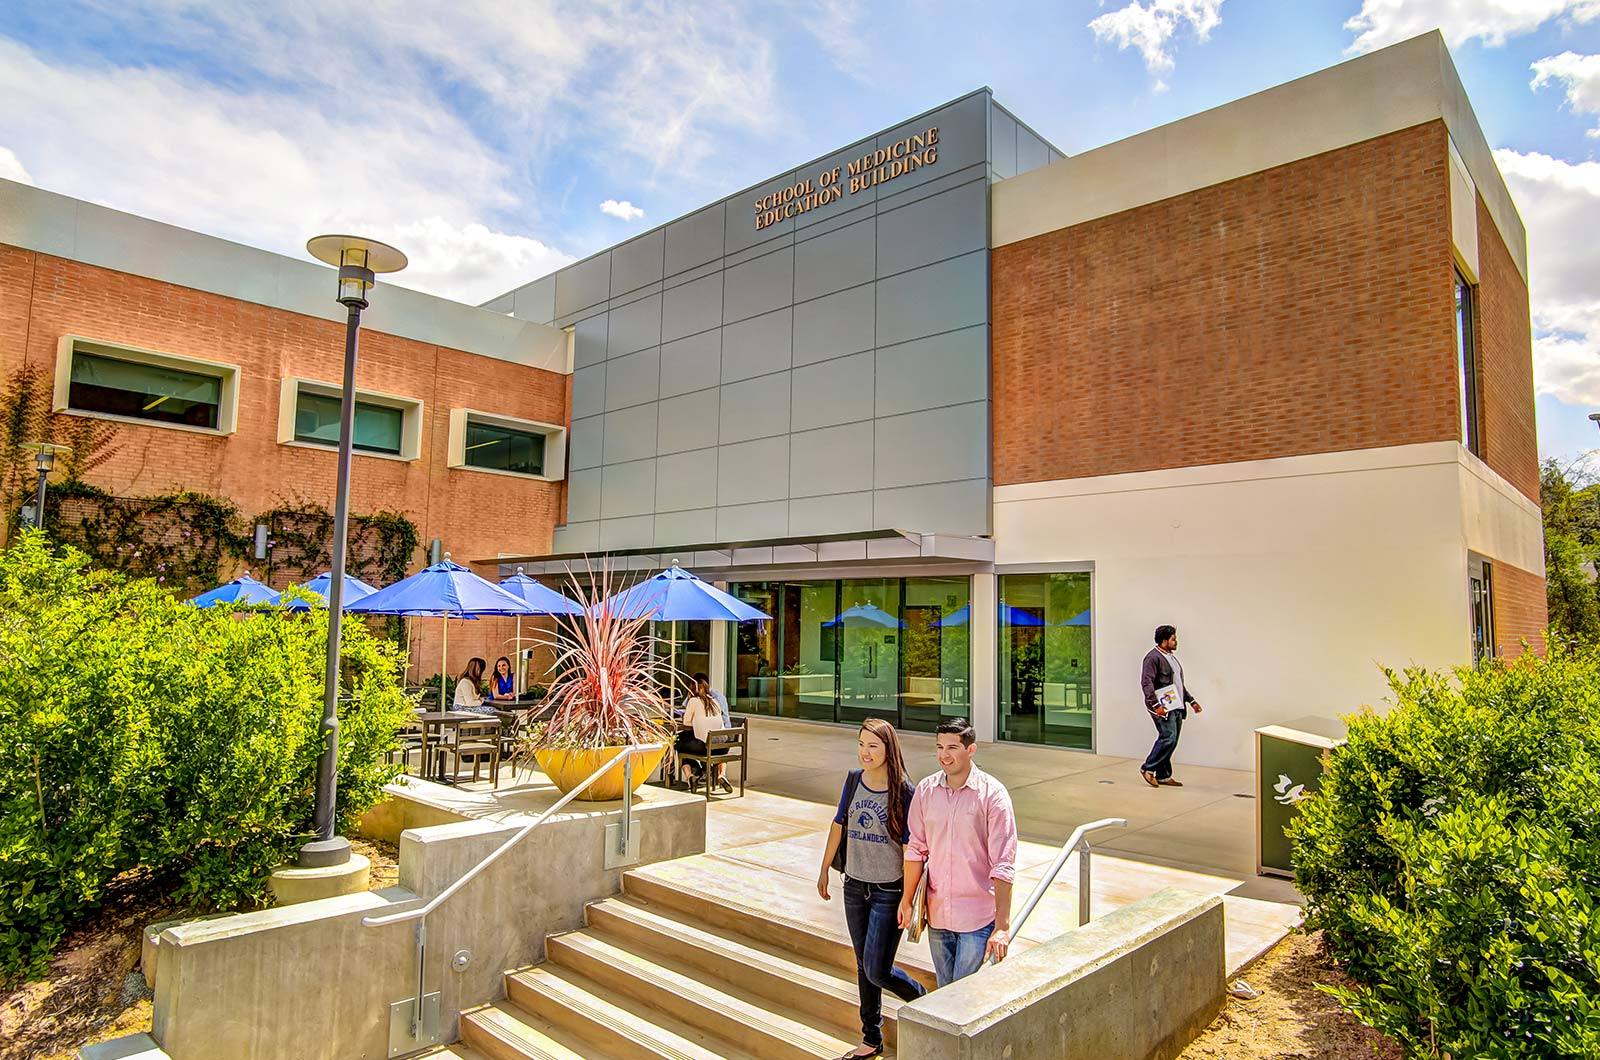 College-Building-Property-Photography-Service-College-Photography-Company-College-Virtual-Tours-University-360-Tours